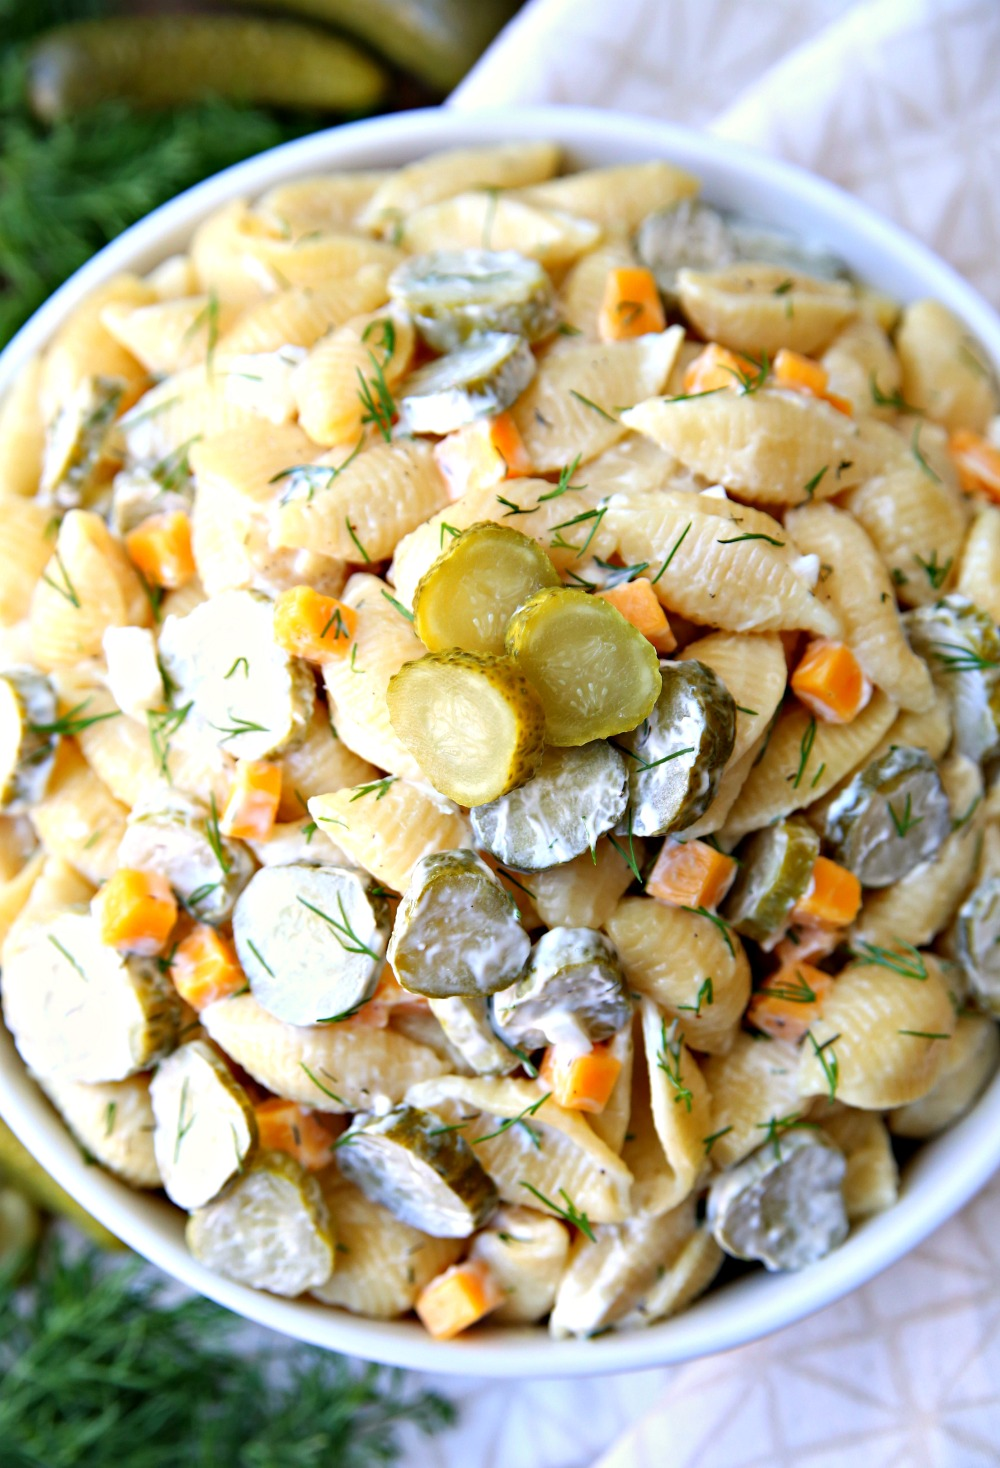 Dill Pickle Salad is a creamy pasta salad loaded with lots of dill pickles. The perfect pasta salad for parties.